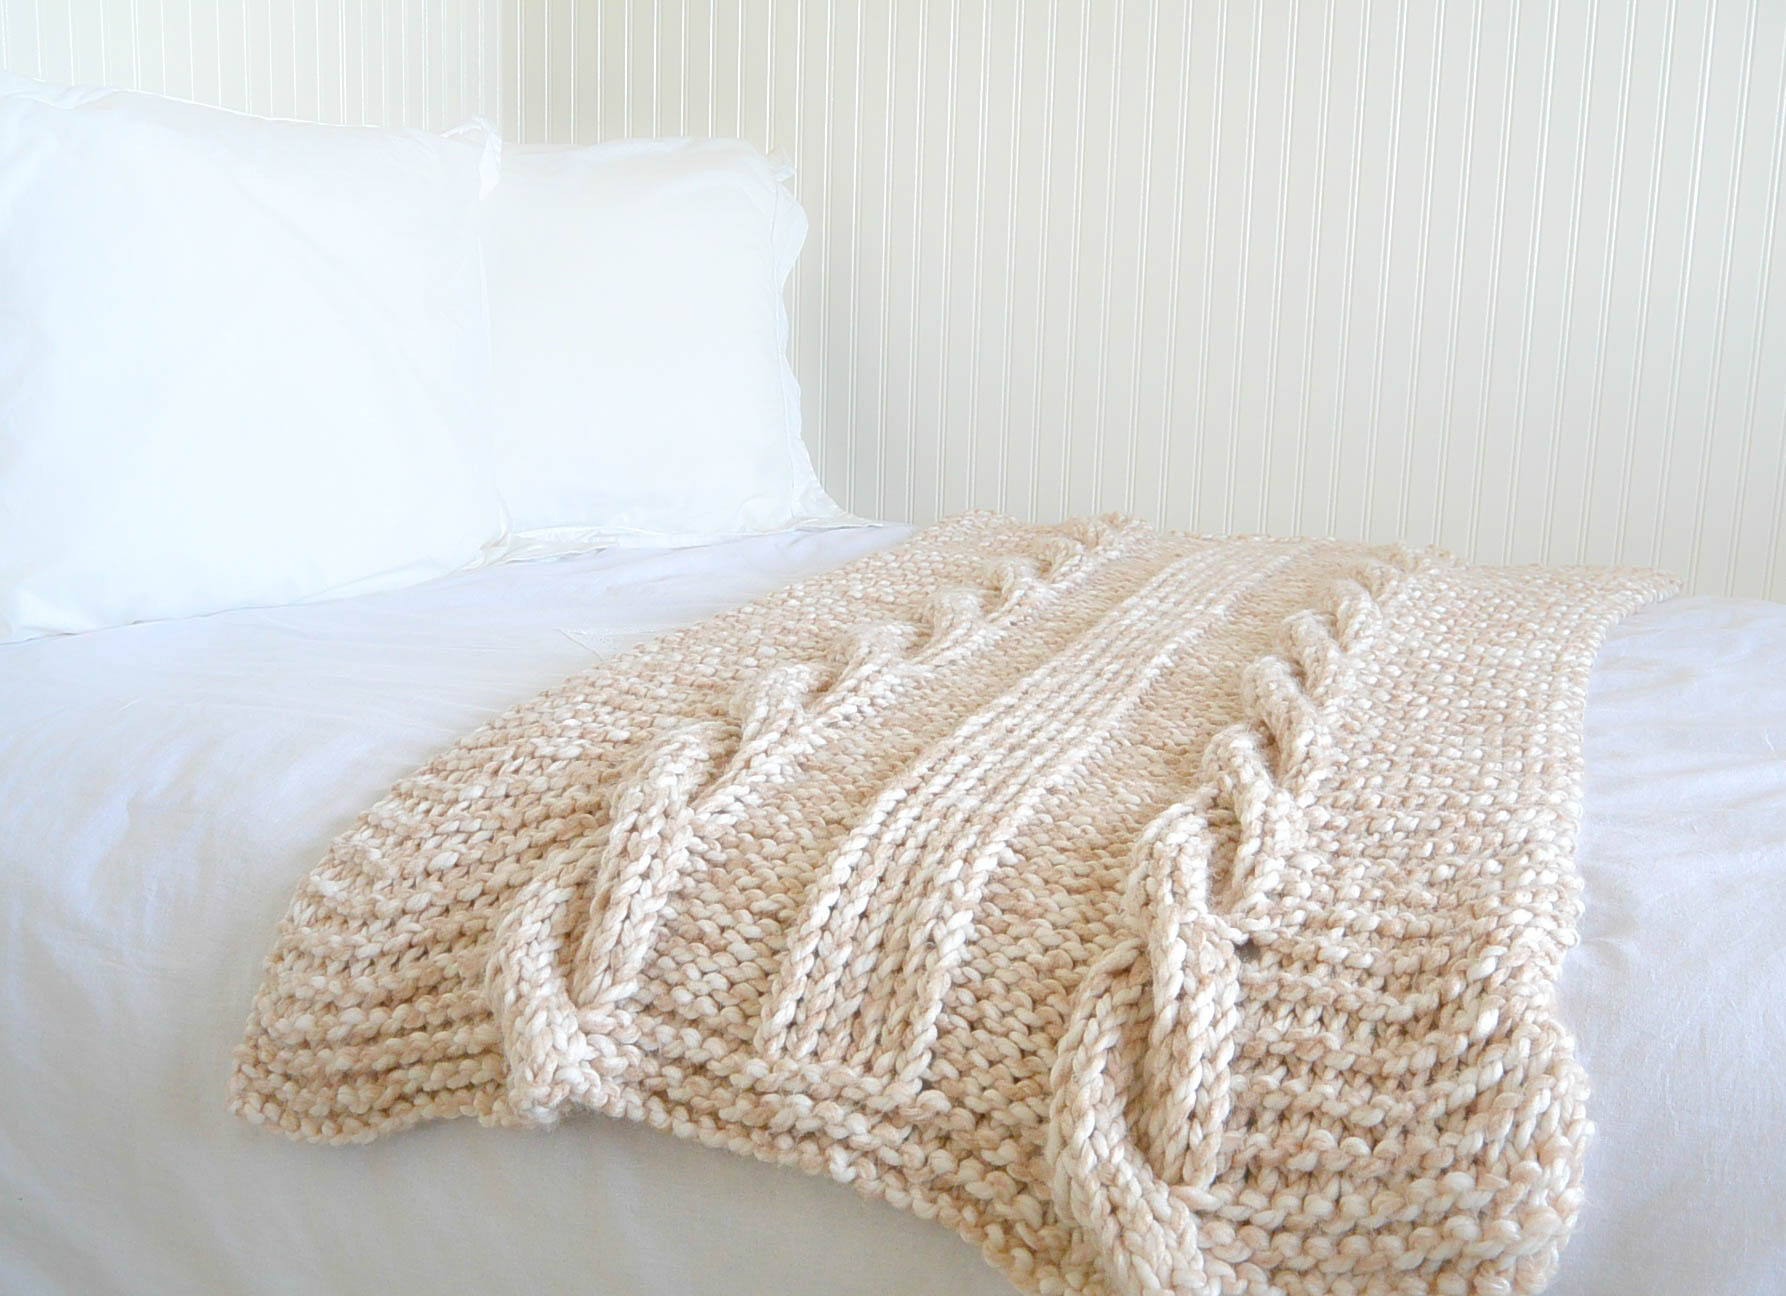 Afghan Knitting Patterns Easy : Cable Knit Afghan Pattern Easy   Mama In A Stitch